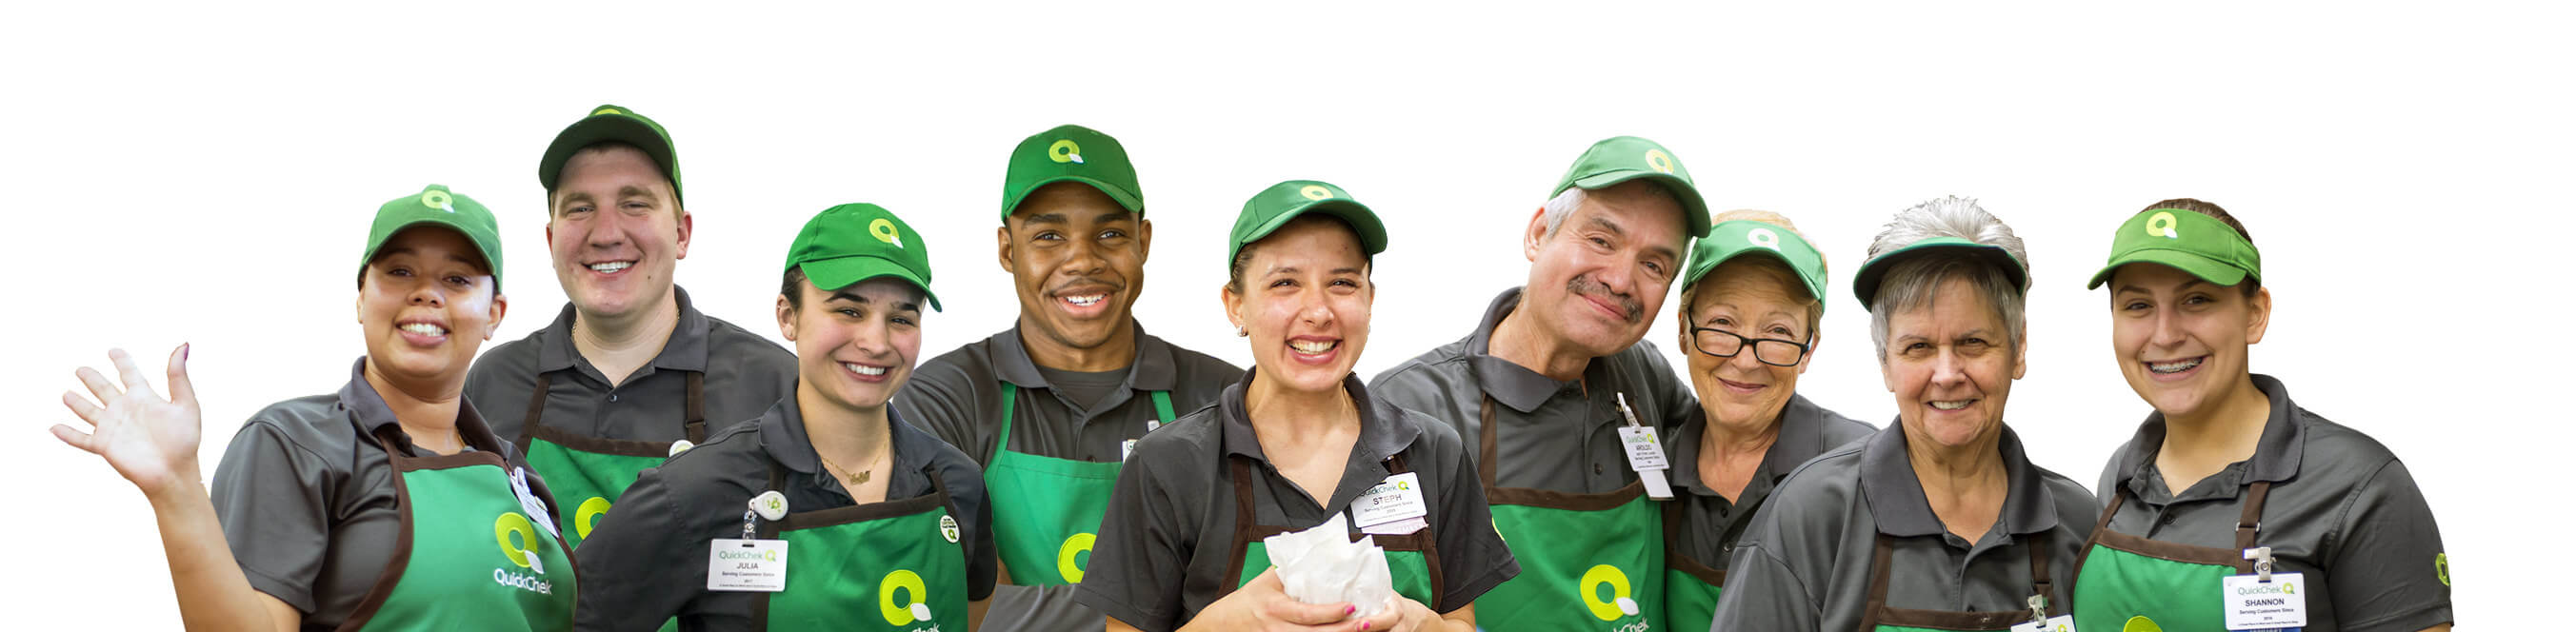 QuickChek Team Members